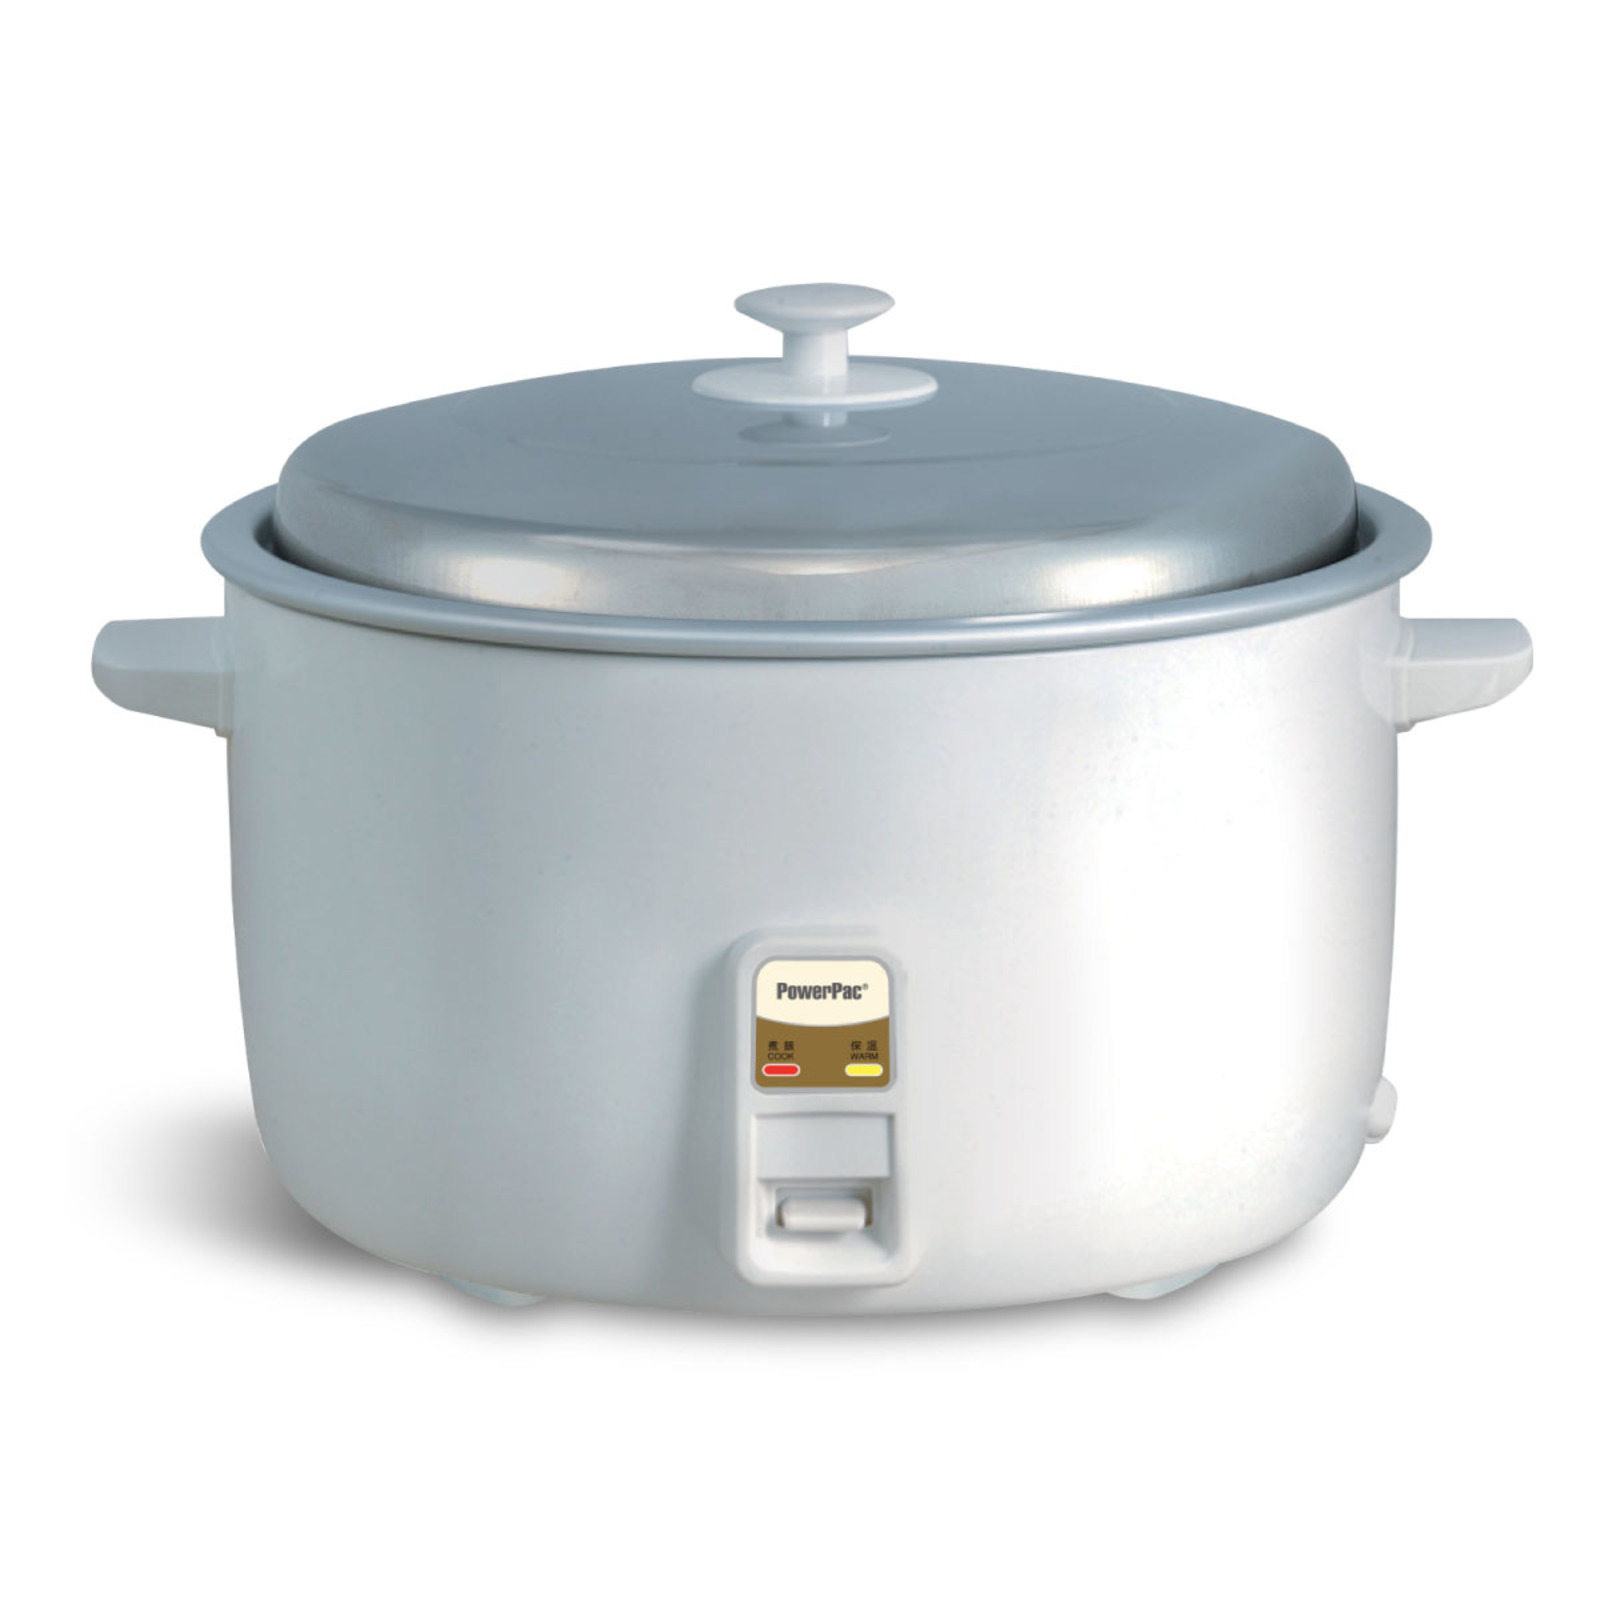 PowerPac 3,6L Commercial Rice Cooker PPRC16